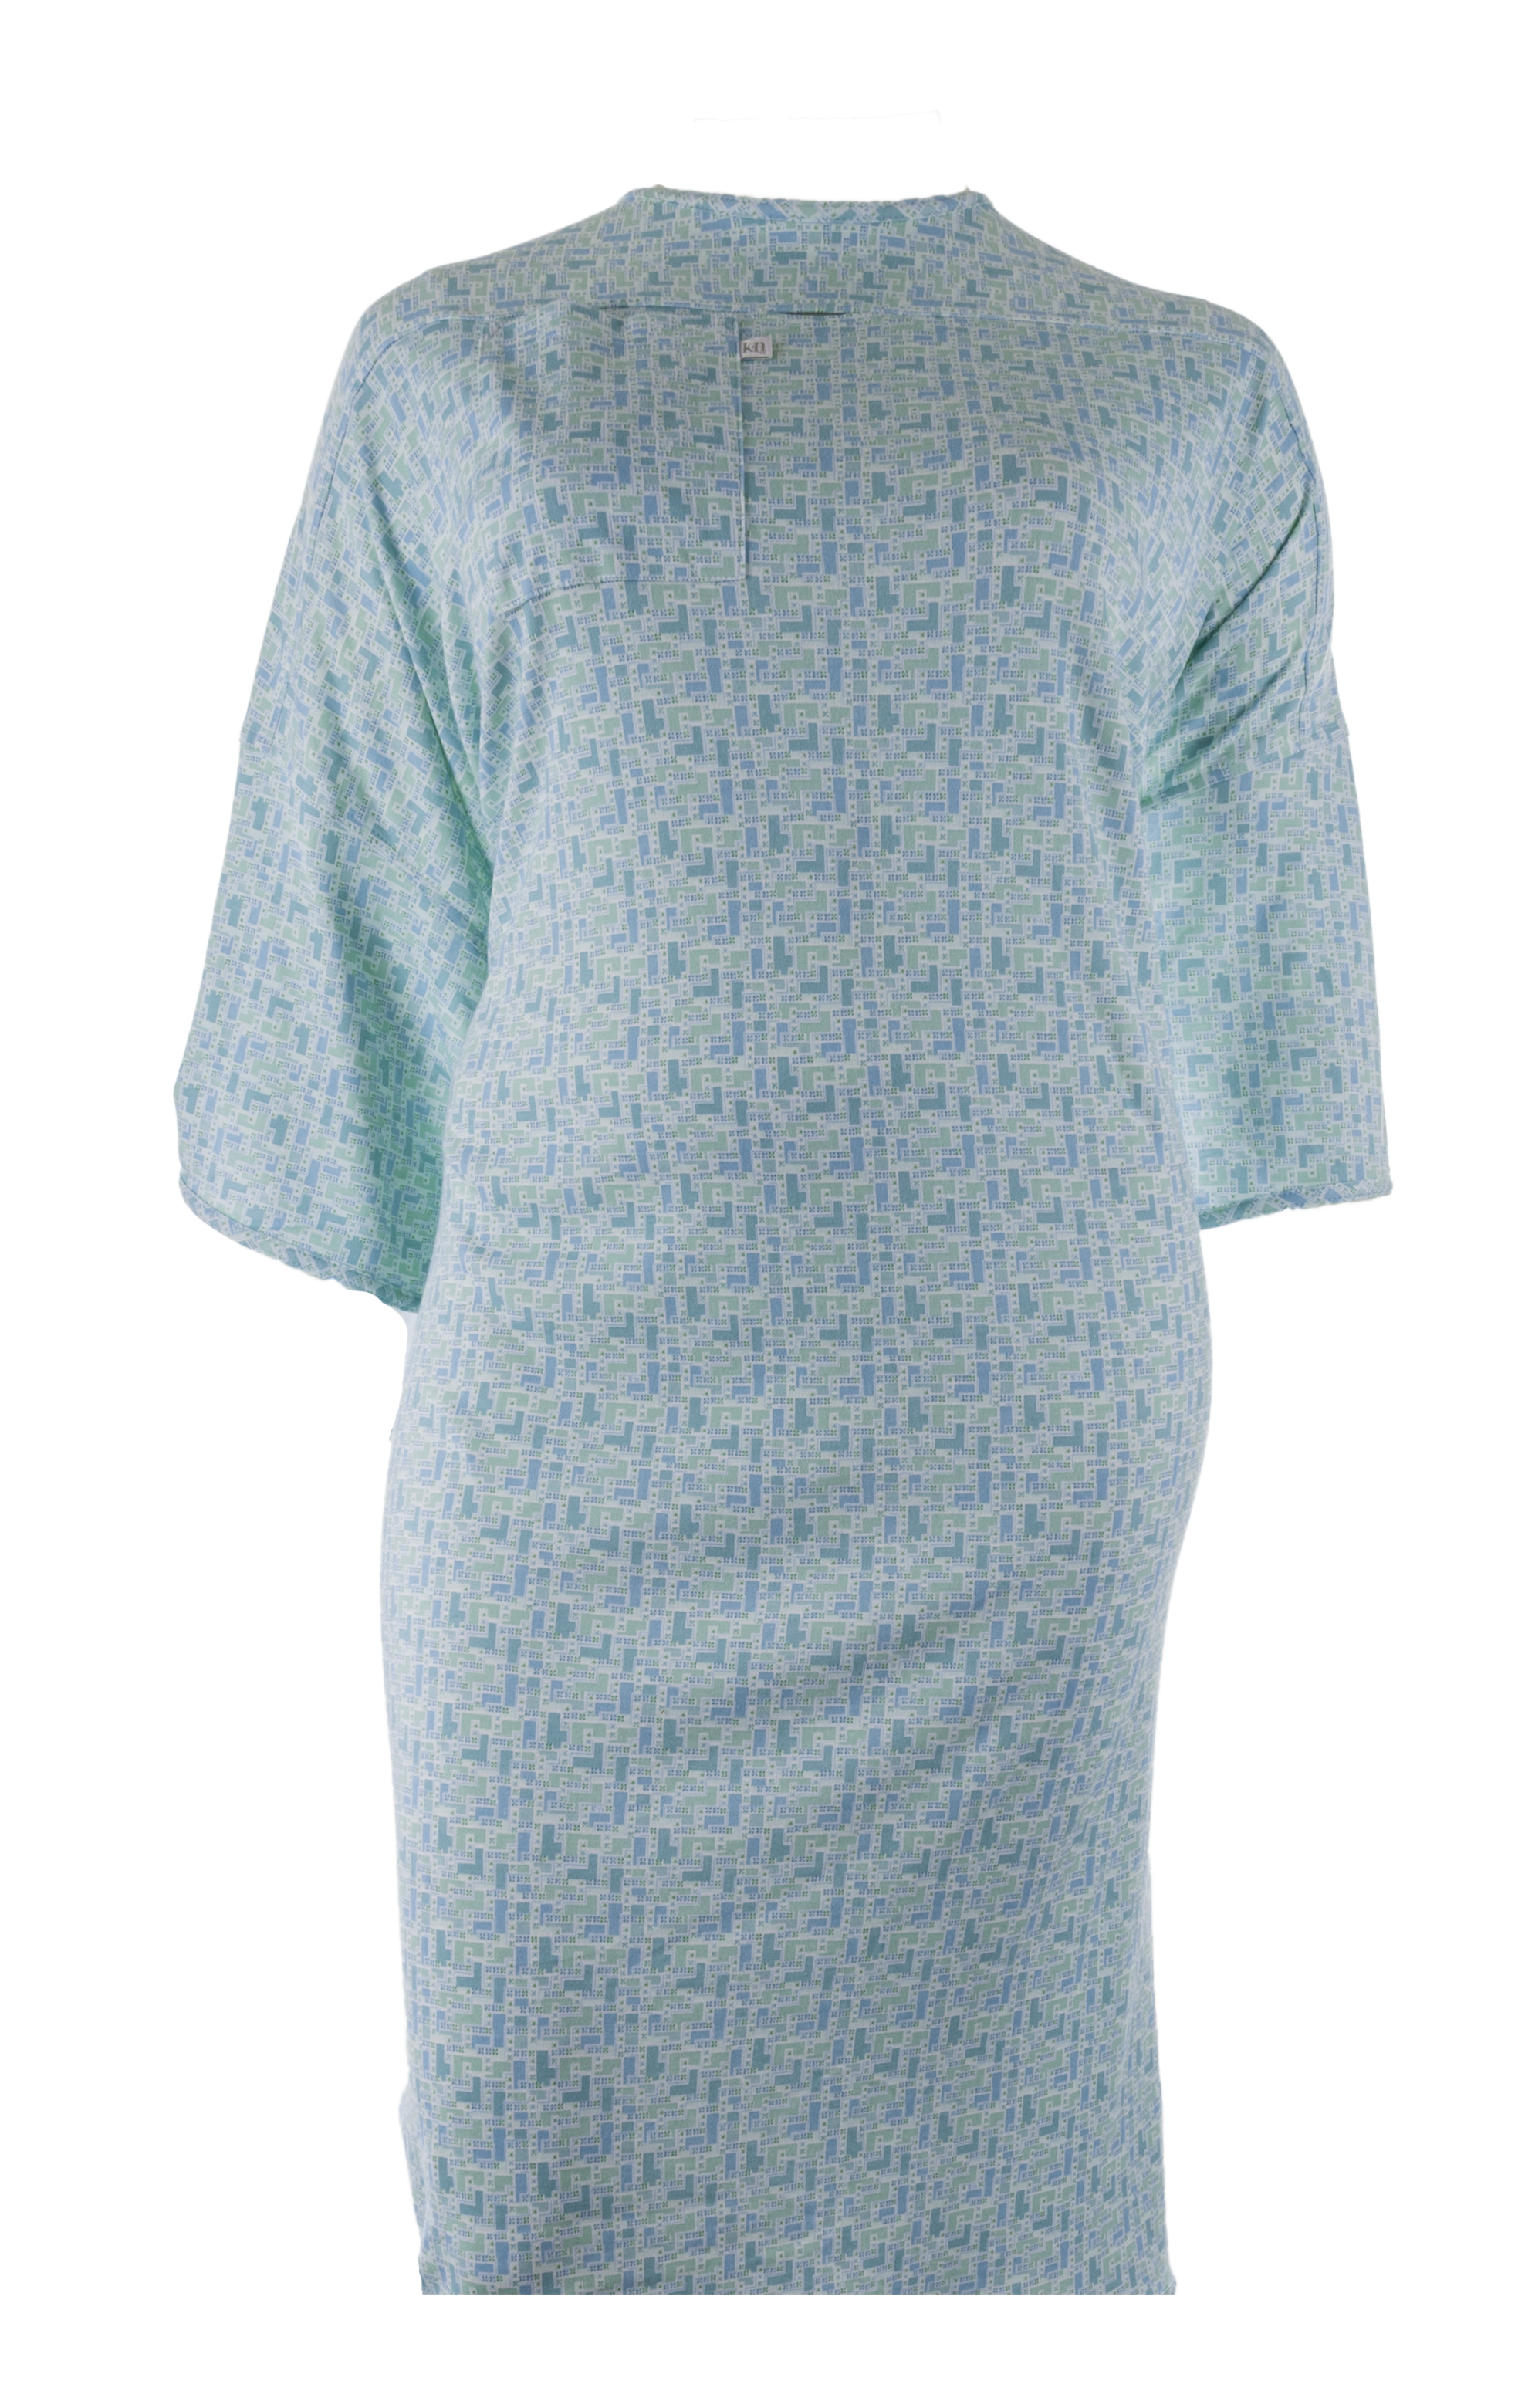 Wholesale Hospital Gowns - Exam Gowns